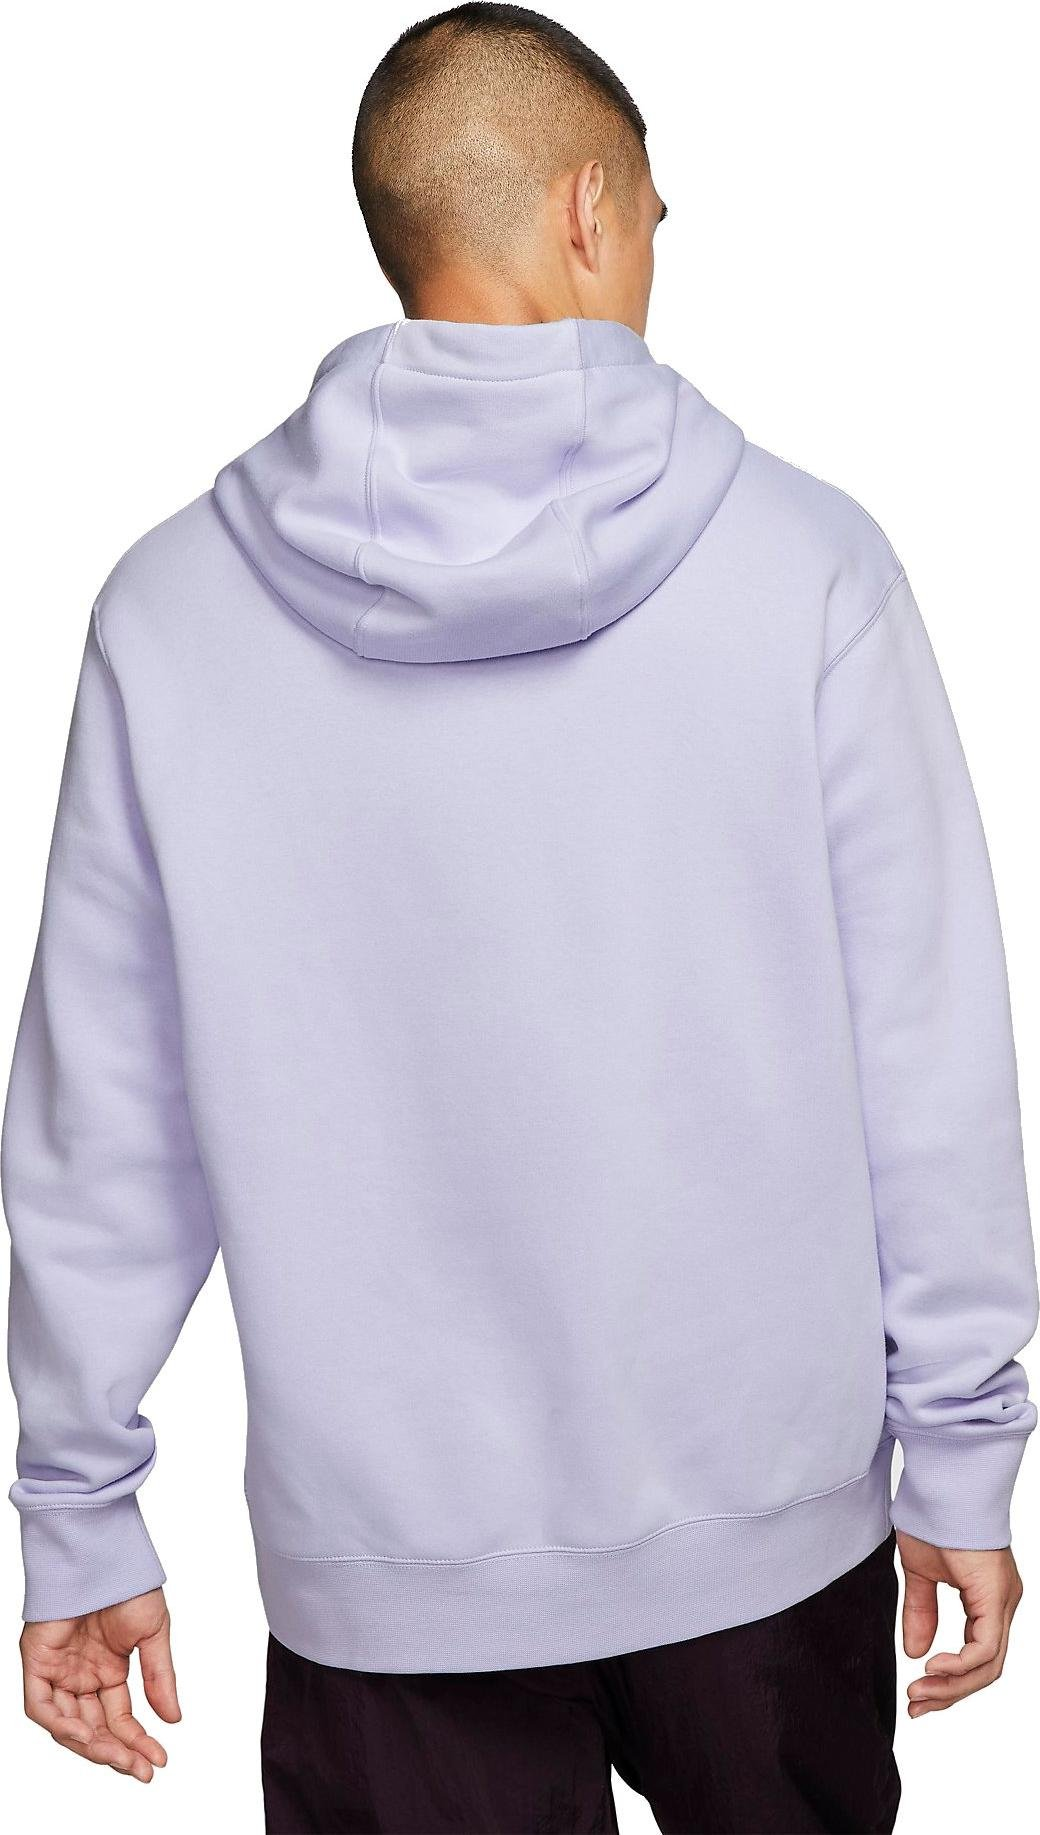 Hooded sweatshirt Nike M NSW CLUB HOODIE PO BB